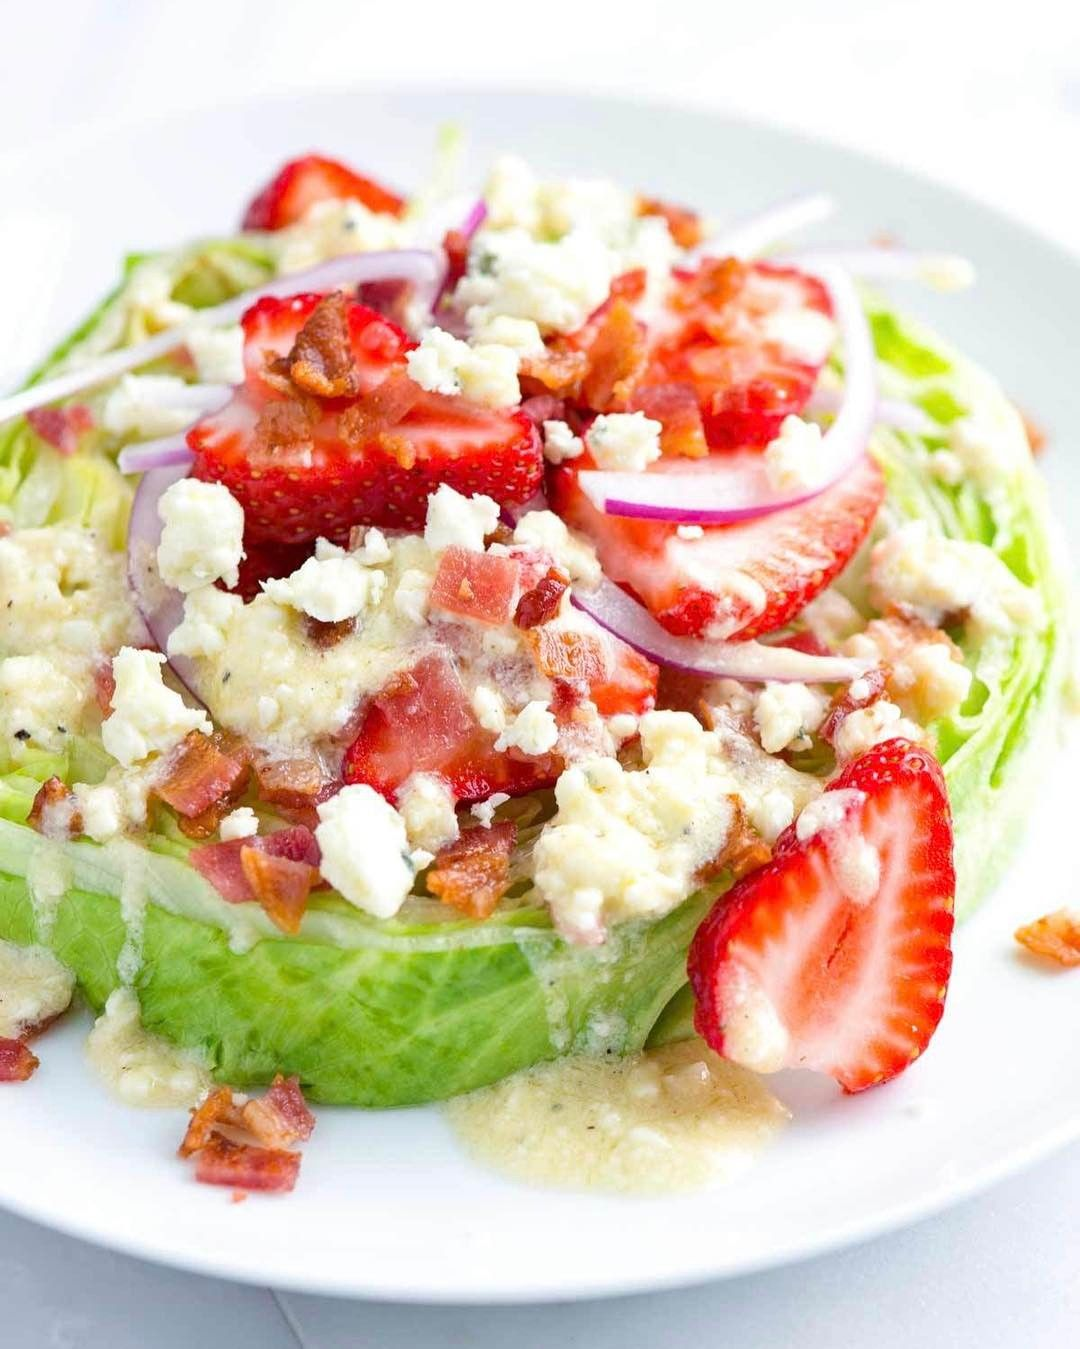 Strawberry Iceberg Salad with Blue Cheese Vinaigrette 🍓 🍓 🍓  Iceberg lettuce sometimes gets a bad rap, but it is perfect in this salad! Click @inspiredtaste for a link to the recipe! ⠀ ⠀ ❤️ If you make this recipe, snap a photo and share it with us. hashtag it #inspiredtaste -- We love seeing your creations - A&J